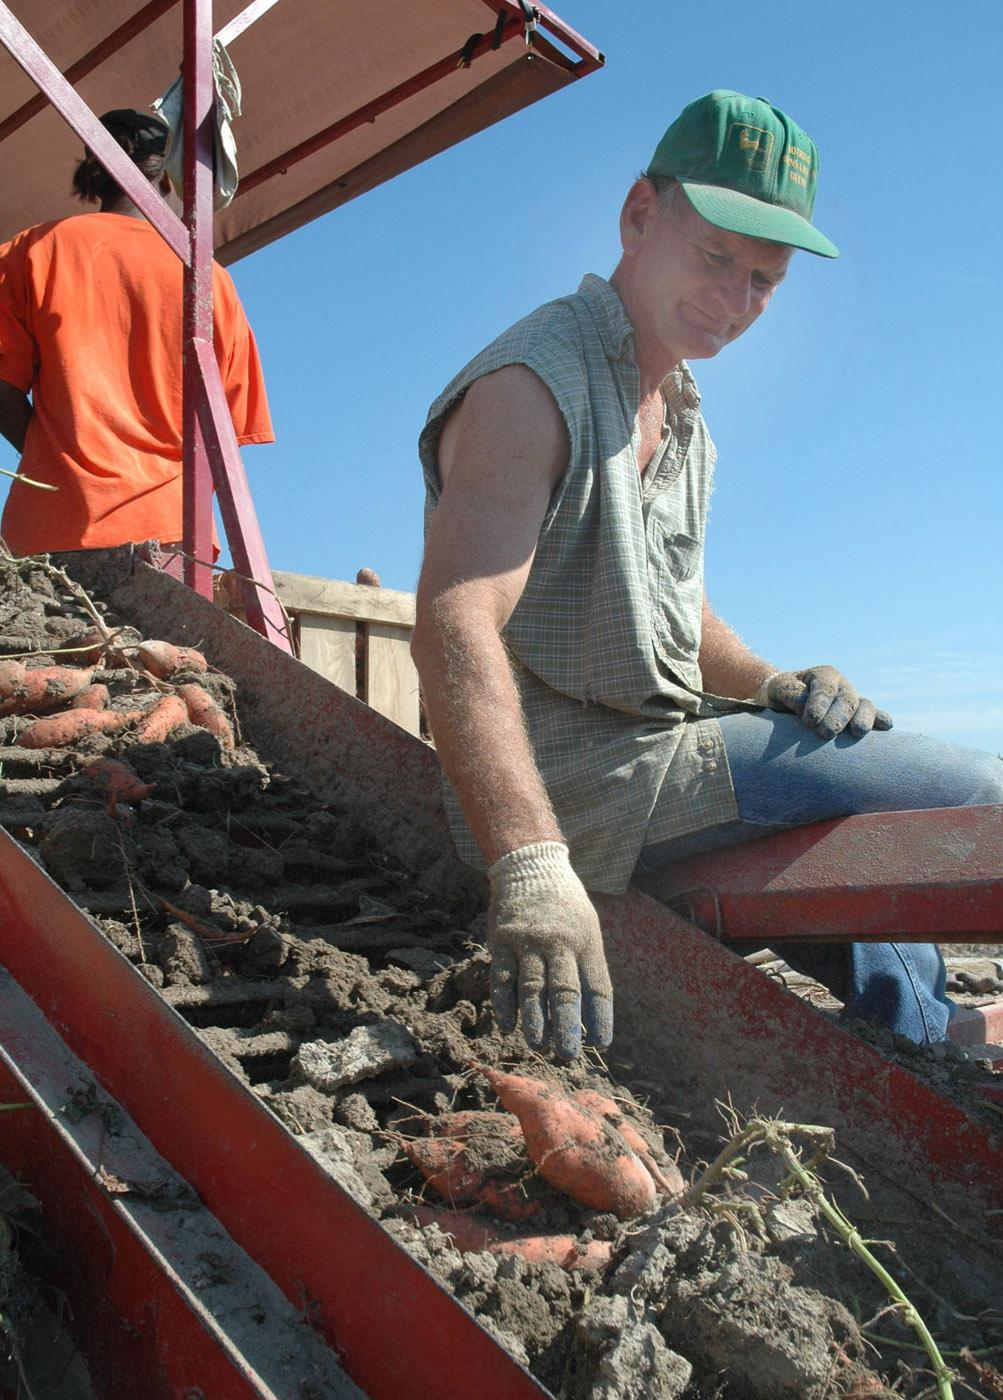 Steve Pettit inspects sweetpotatoes being harvested on his farm near Houston.